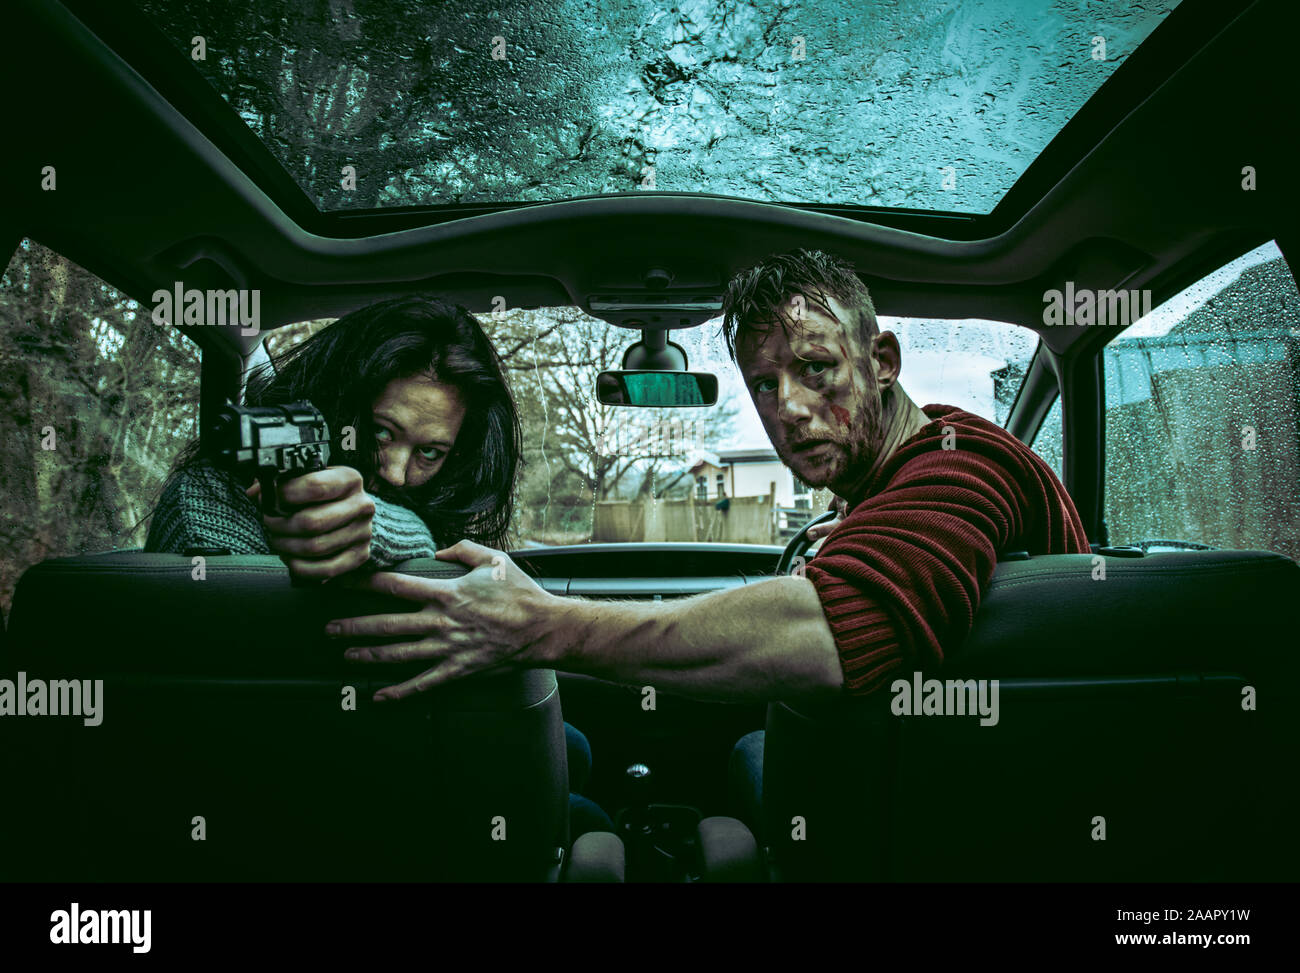 Two people, a male and female appear in danger or maybe they are the dangerous ones? they are sat in a car covers in dirt and weapon in hand Stock Photo